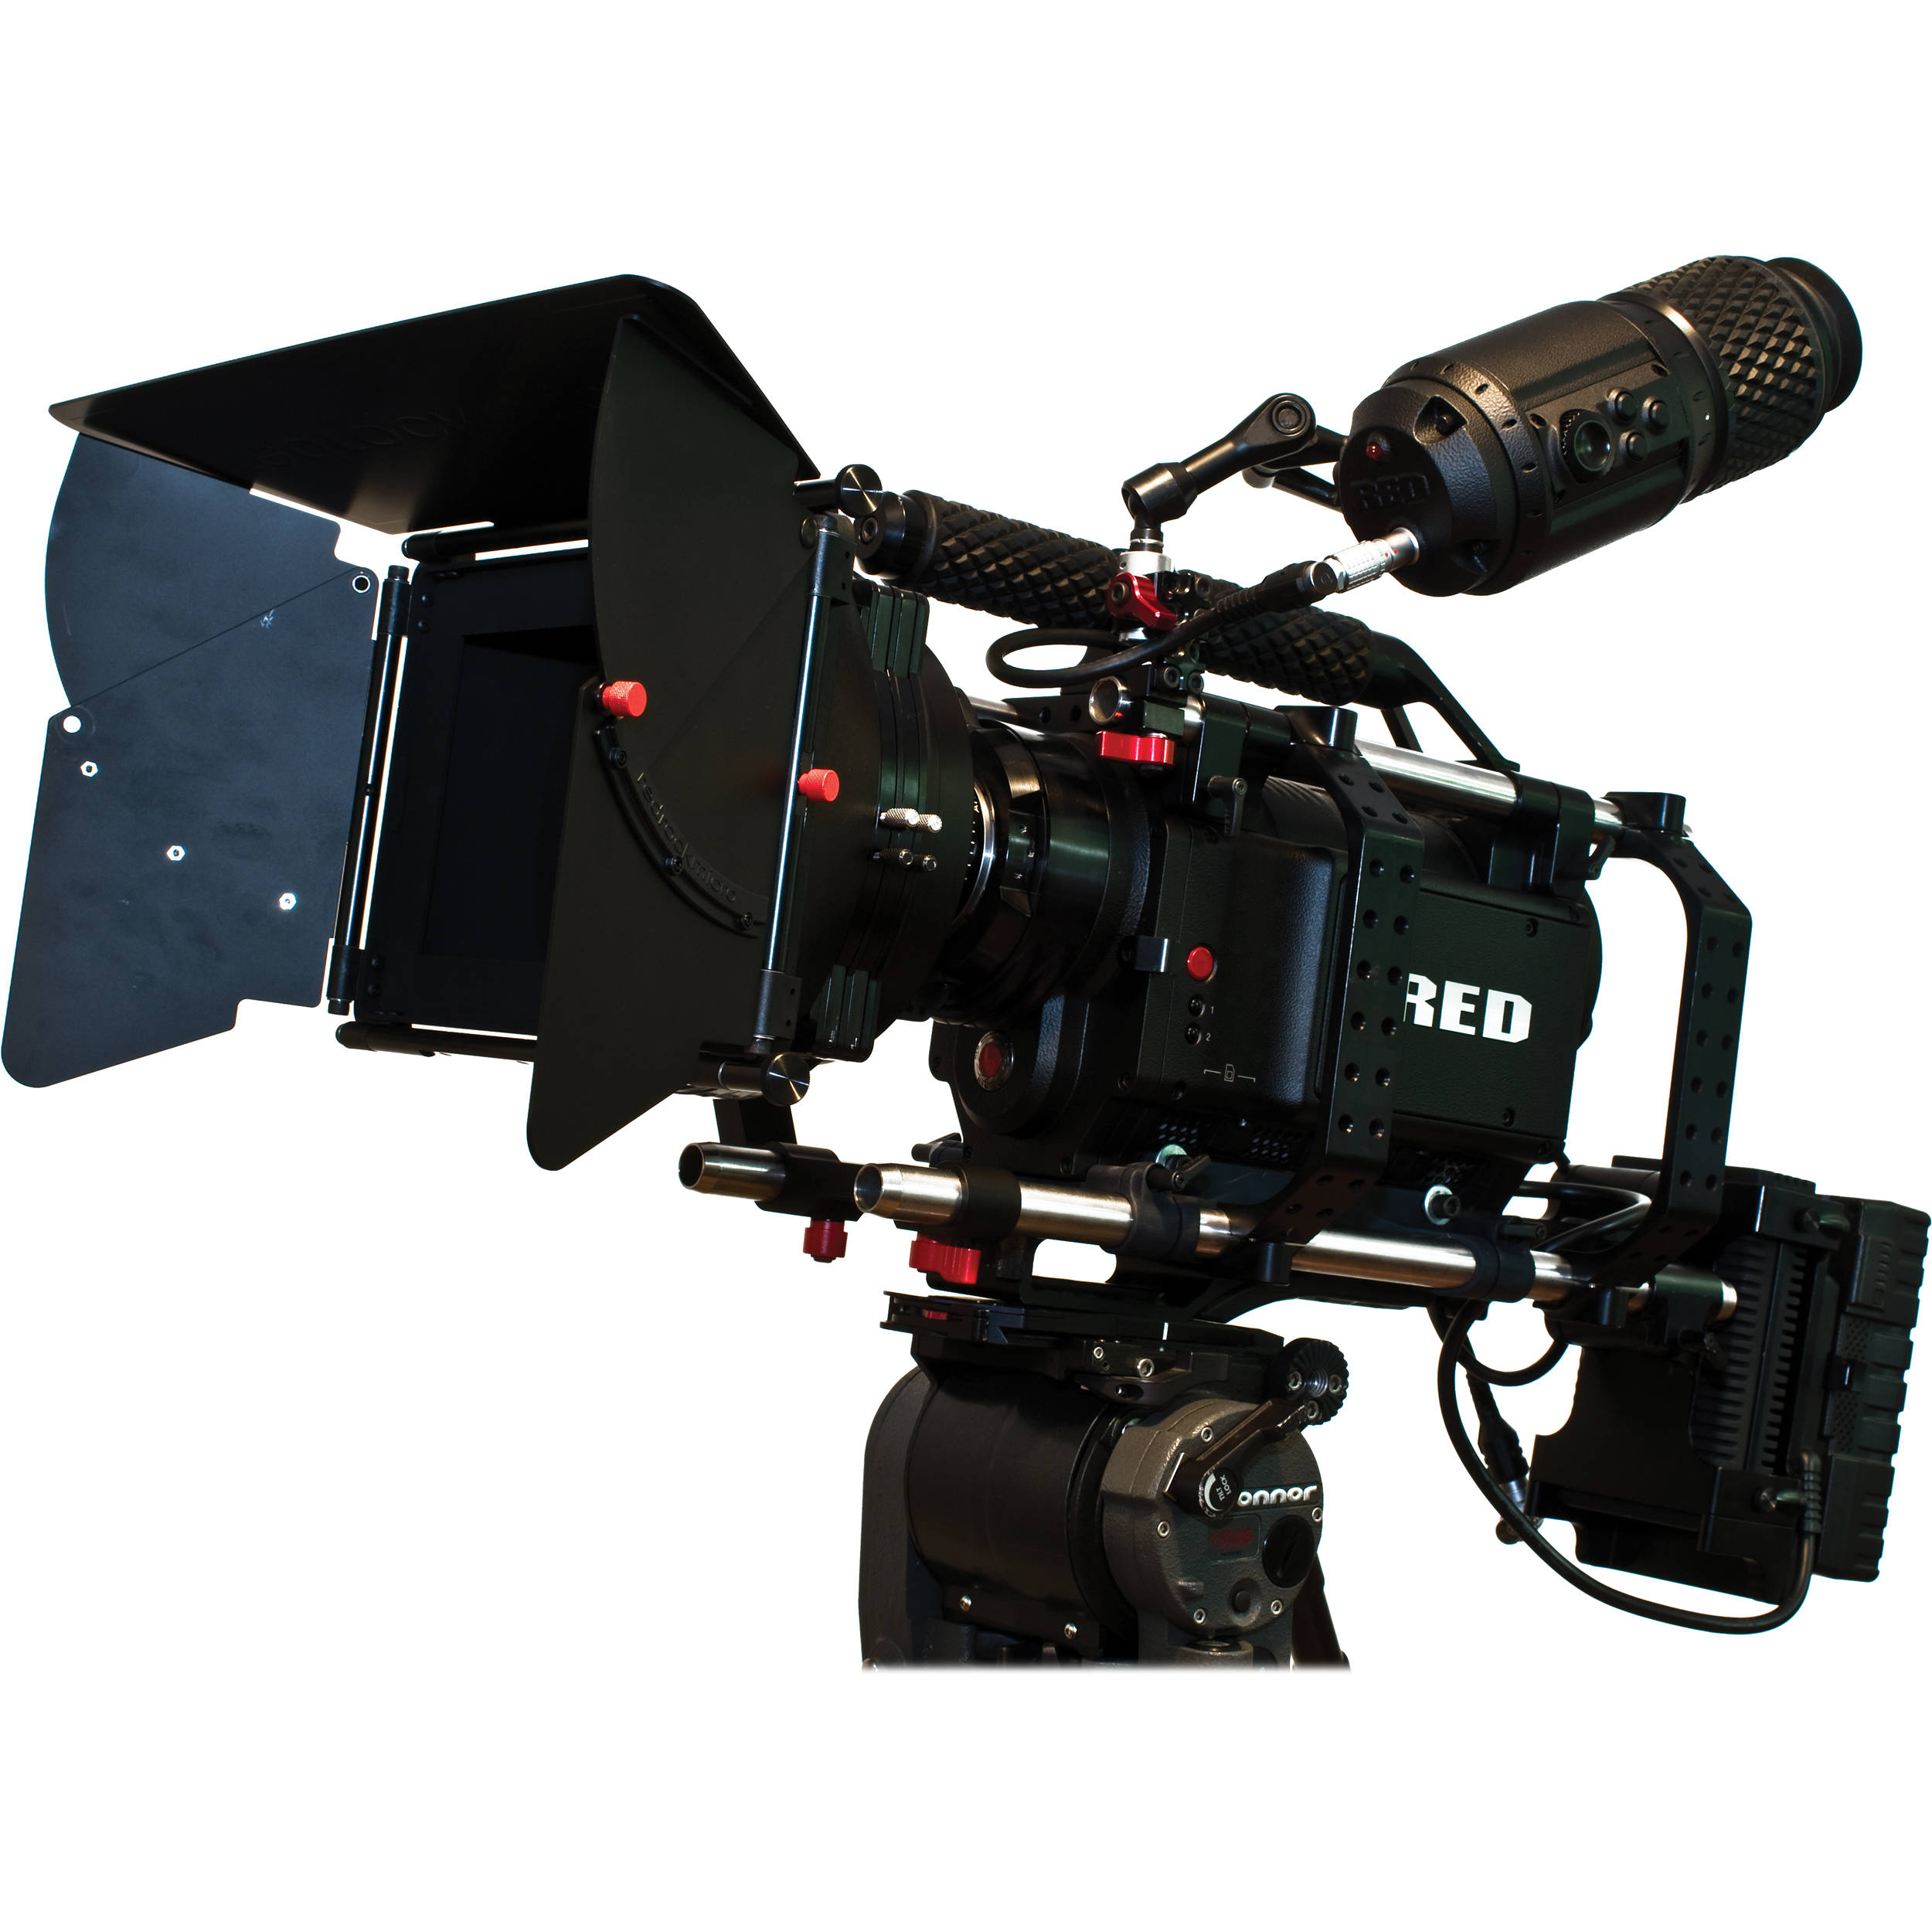 redrock micro micromattebox deluxe bundle for red one 8 003 0044 rh bhphotovideo com Red Camera Lens Red Digital Camera